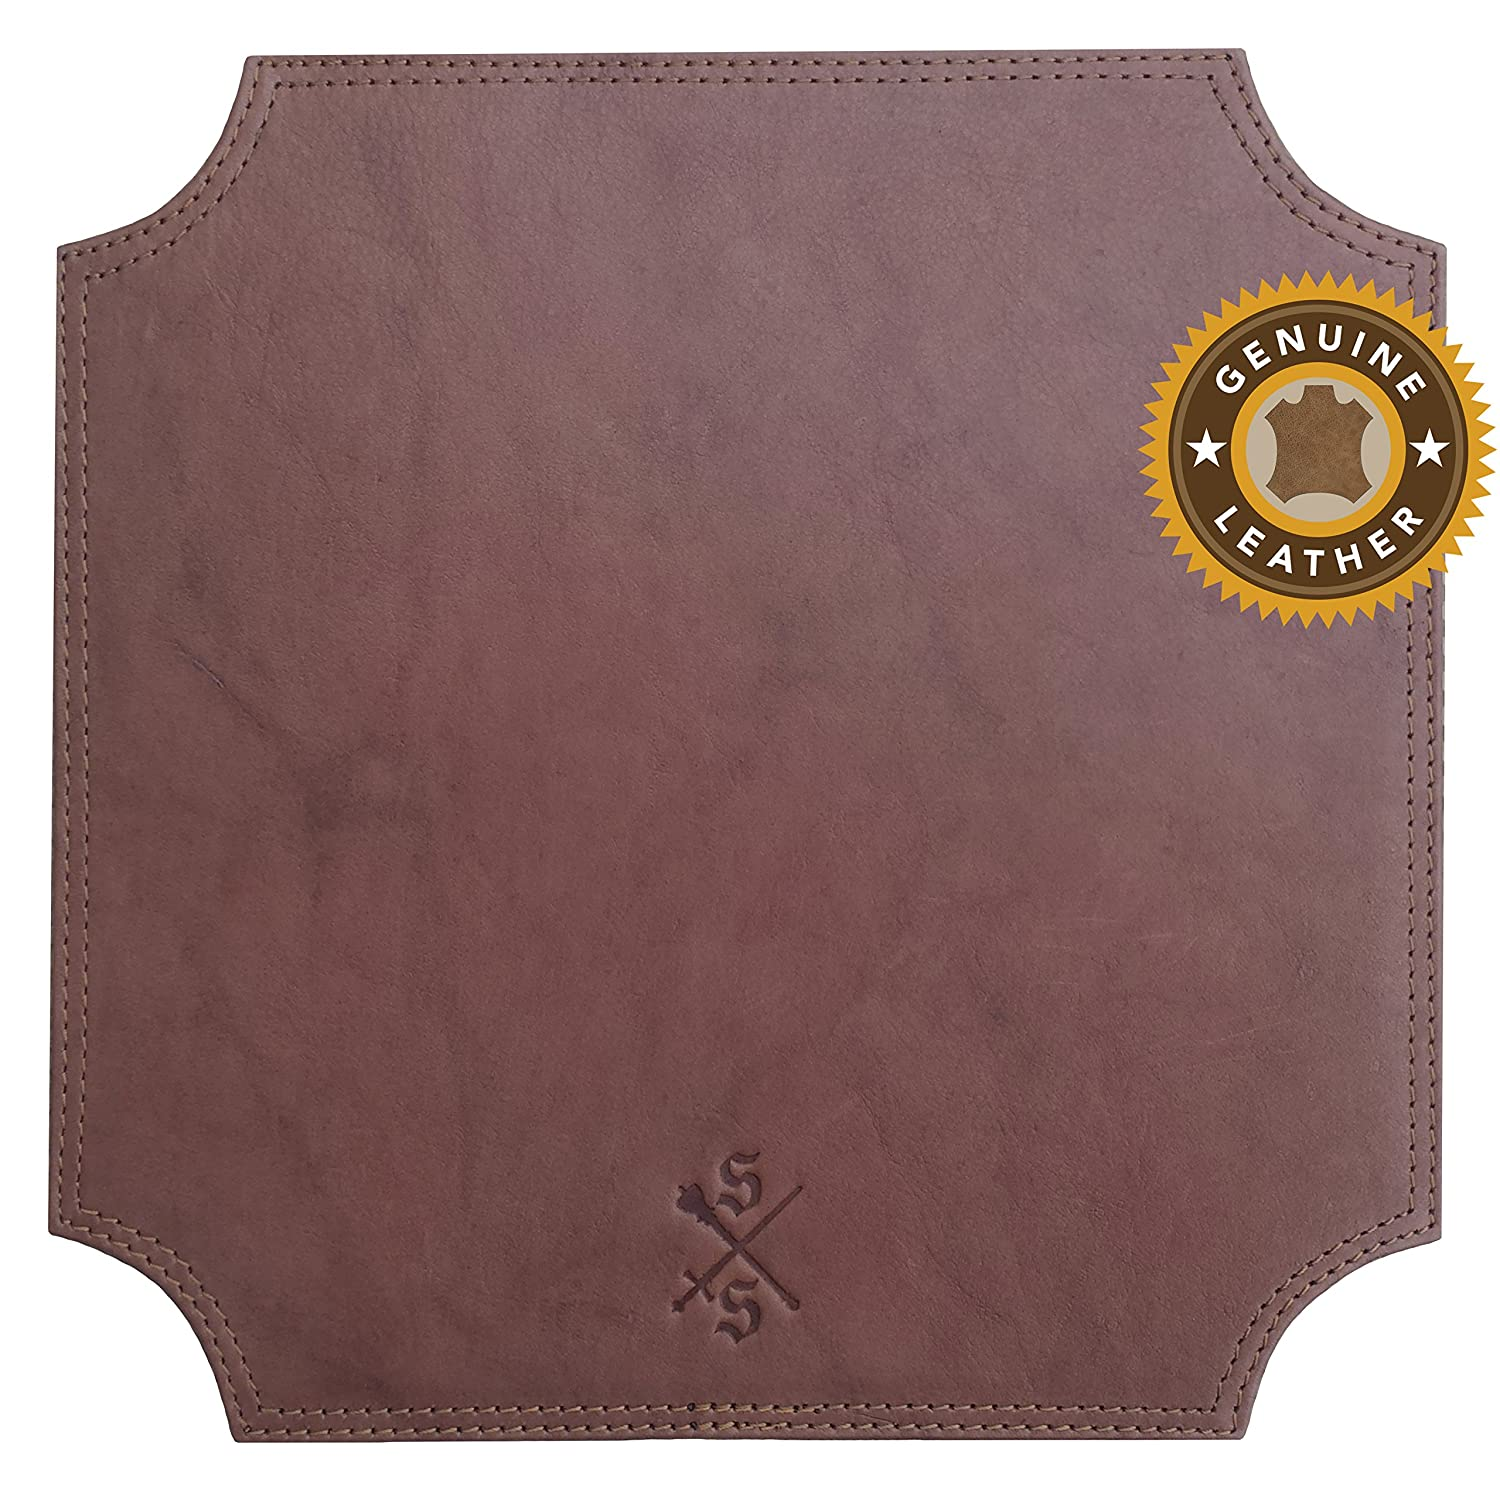 Sword & Scepter™ Cowhide Leather Mouse Pad | Premium Mousepad for Executives and Gaming | Brown